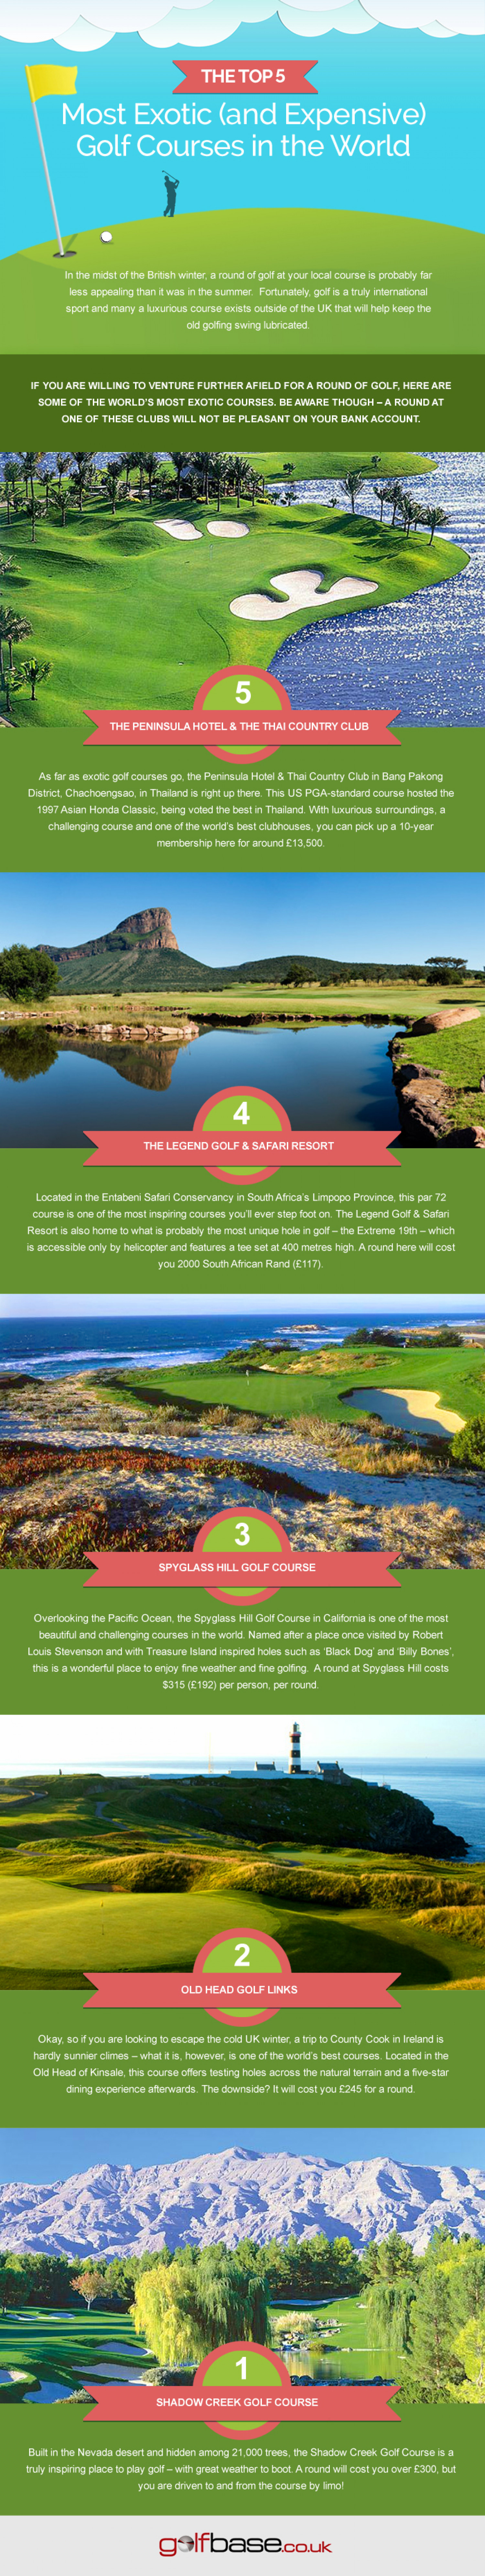 The Top 5 Most Exotic (and Expensive) Golf Courses in The World Infographic